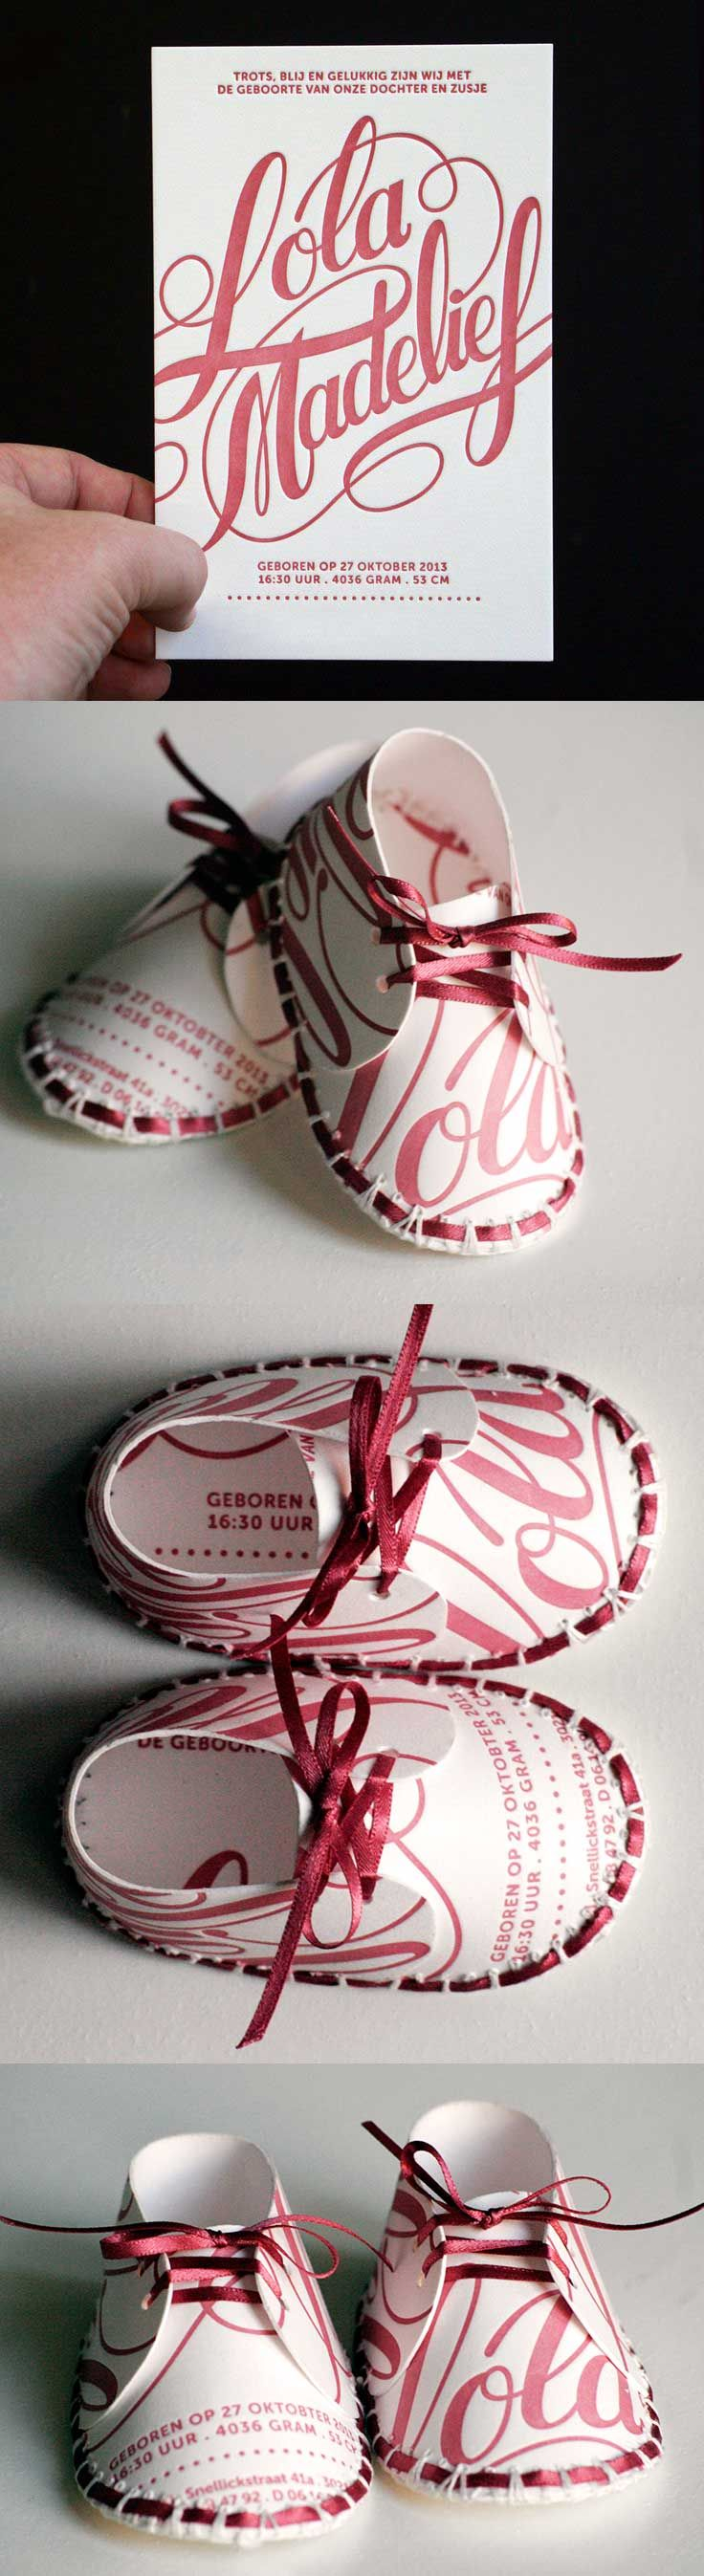 Cute shoes made of Lola's birth announcement card.